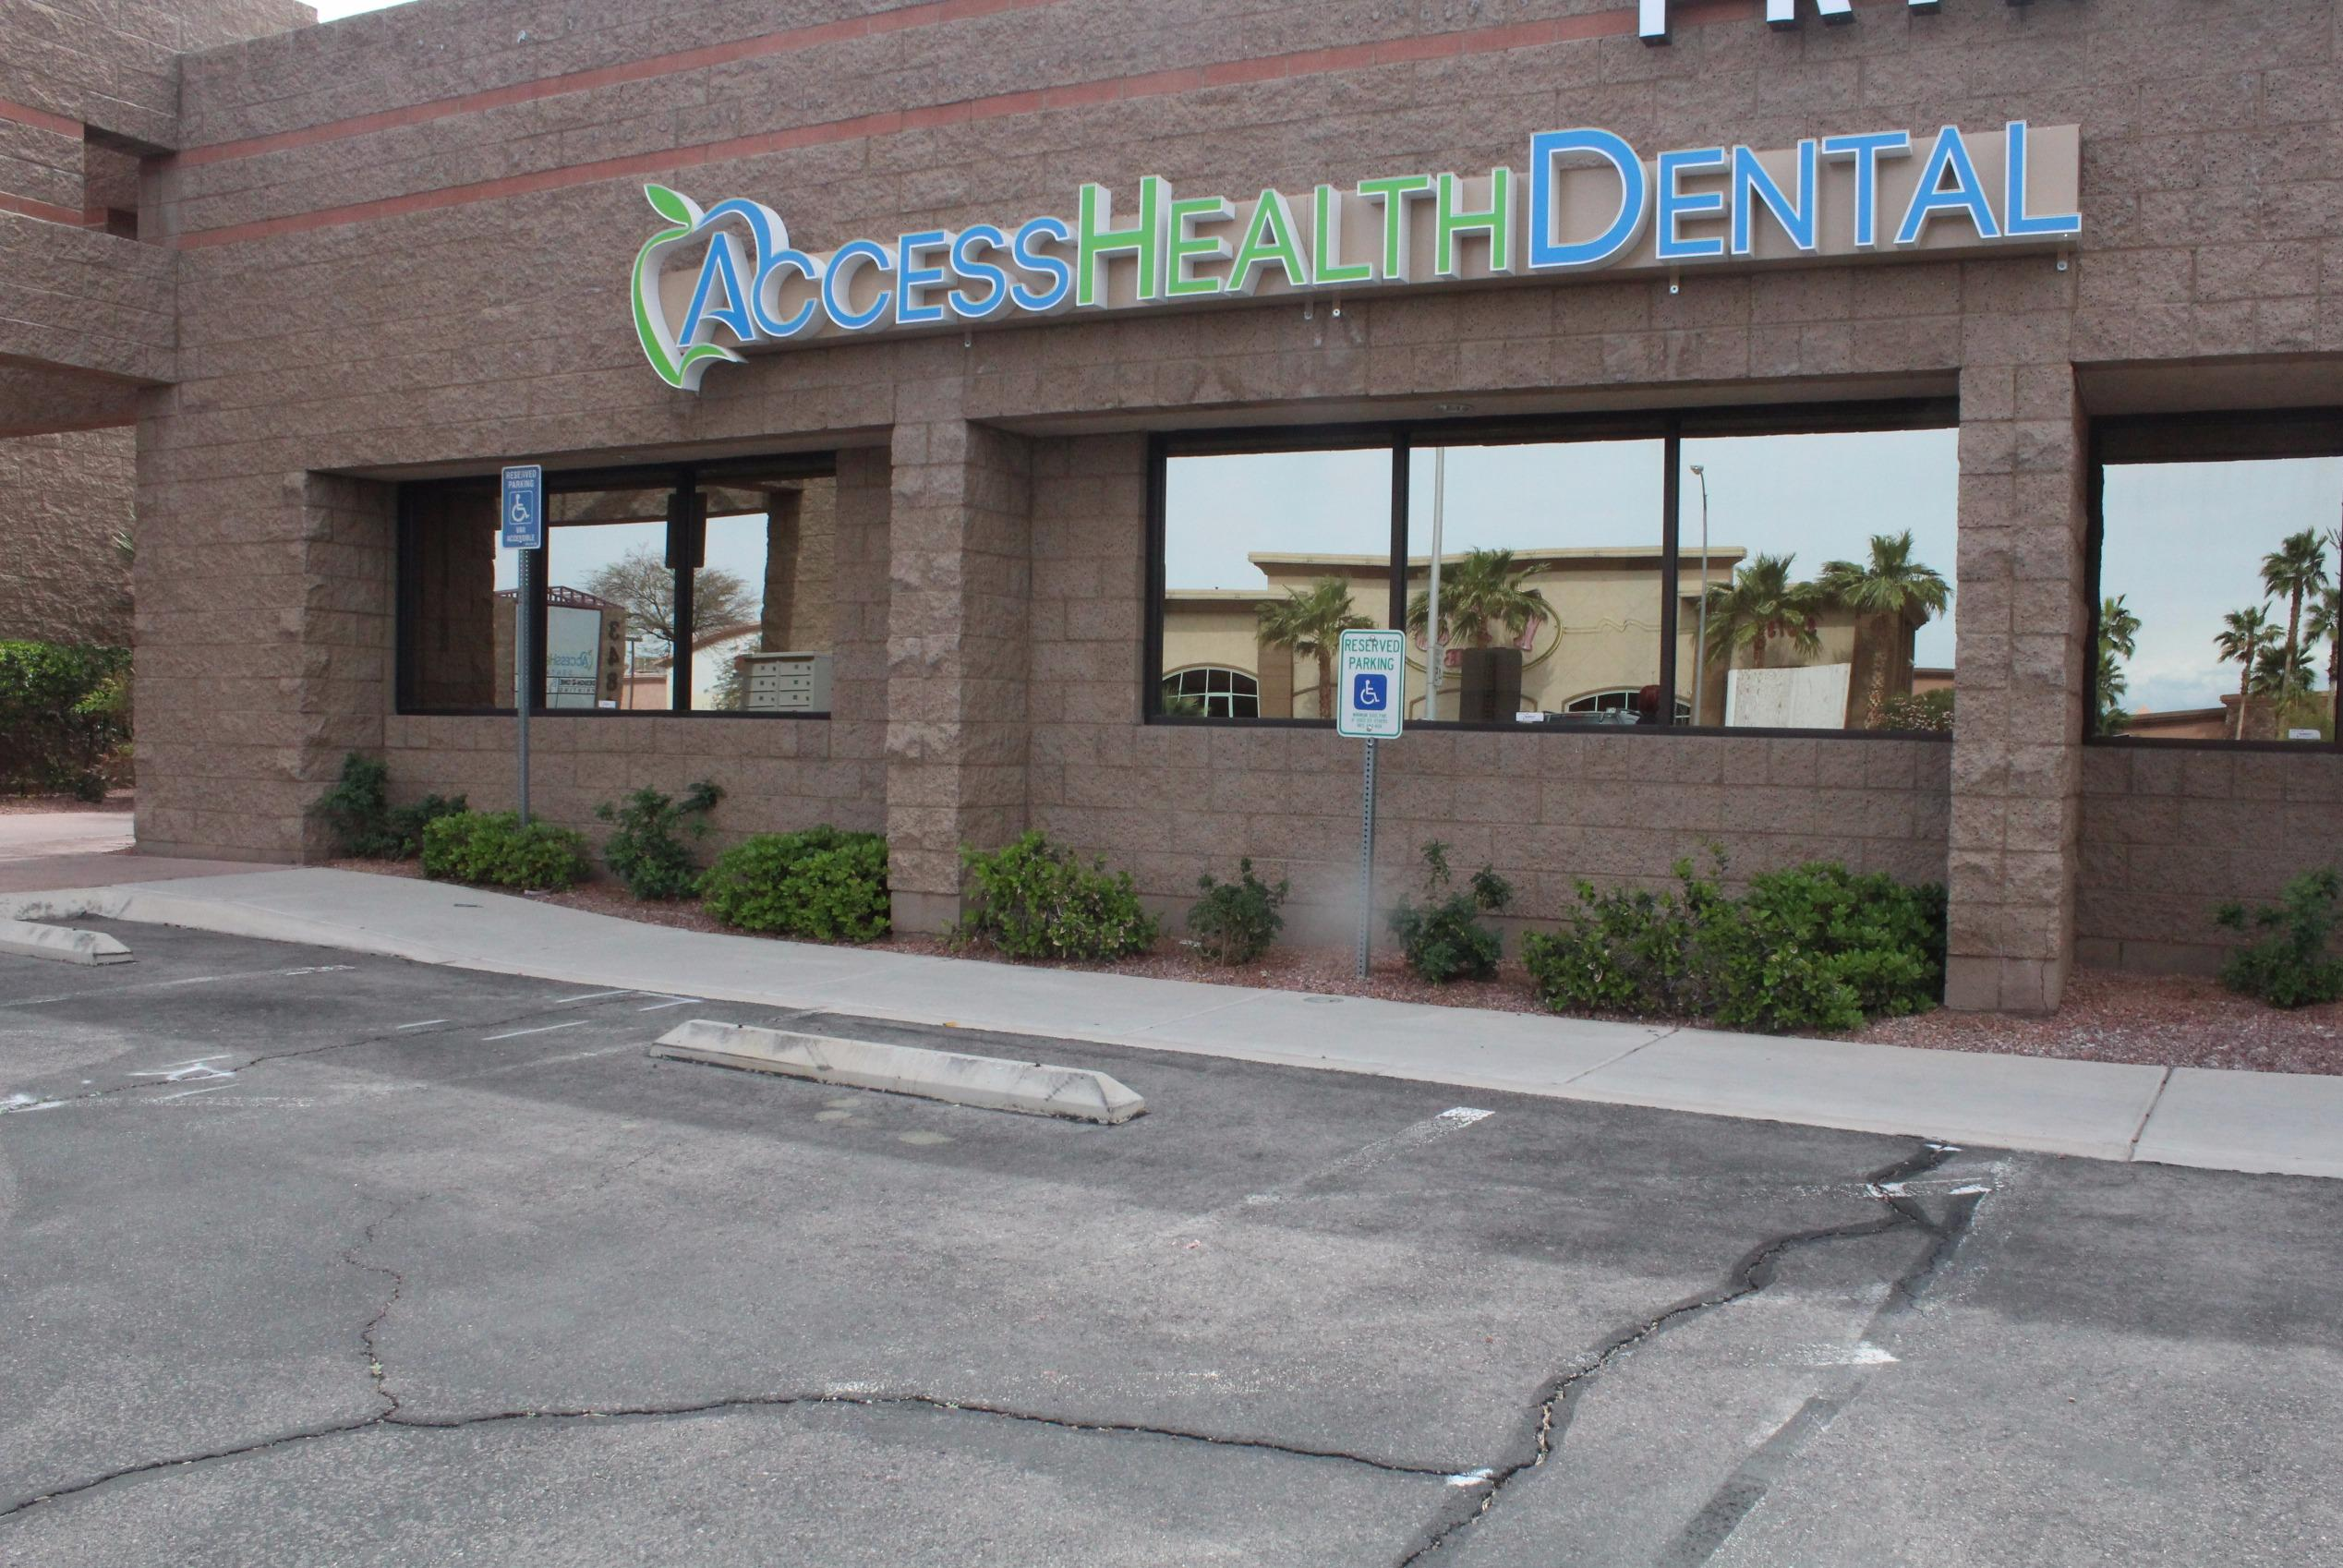 Access Health Dental - Sunset Dental